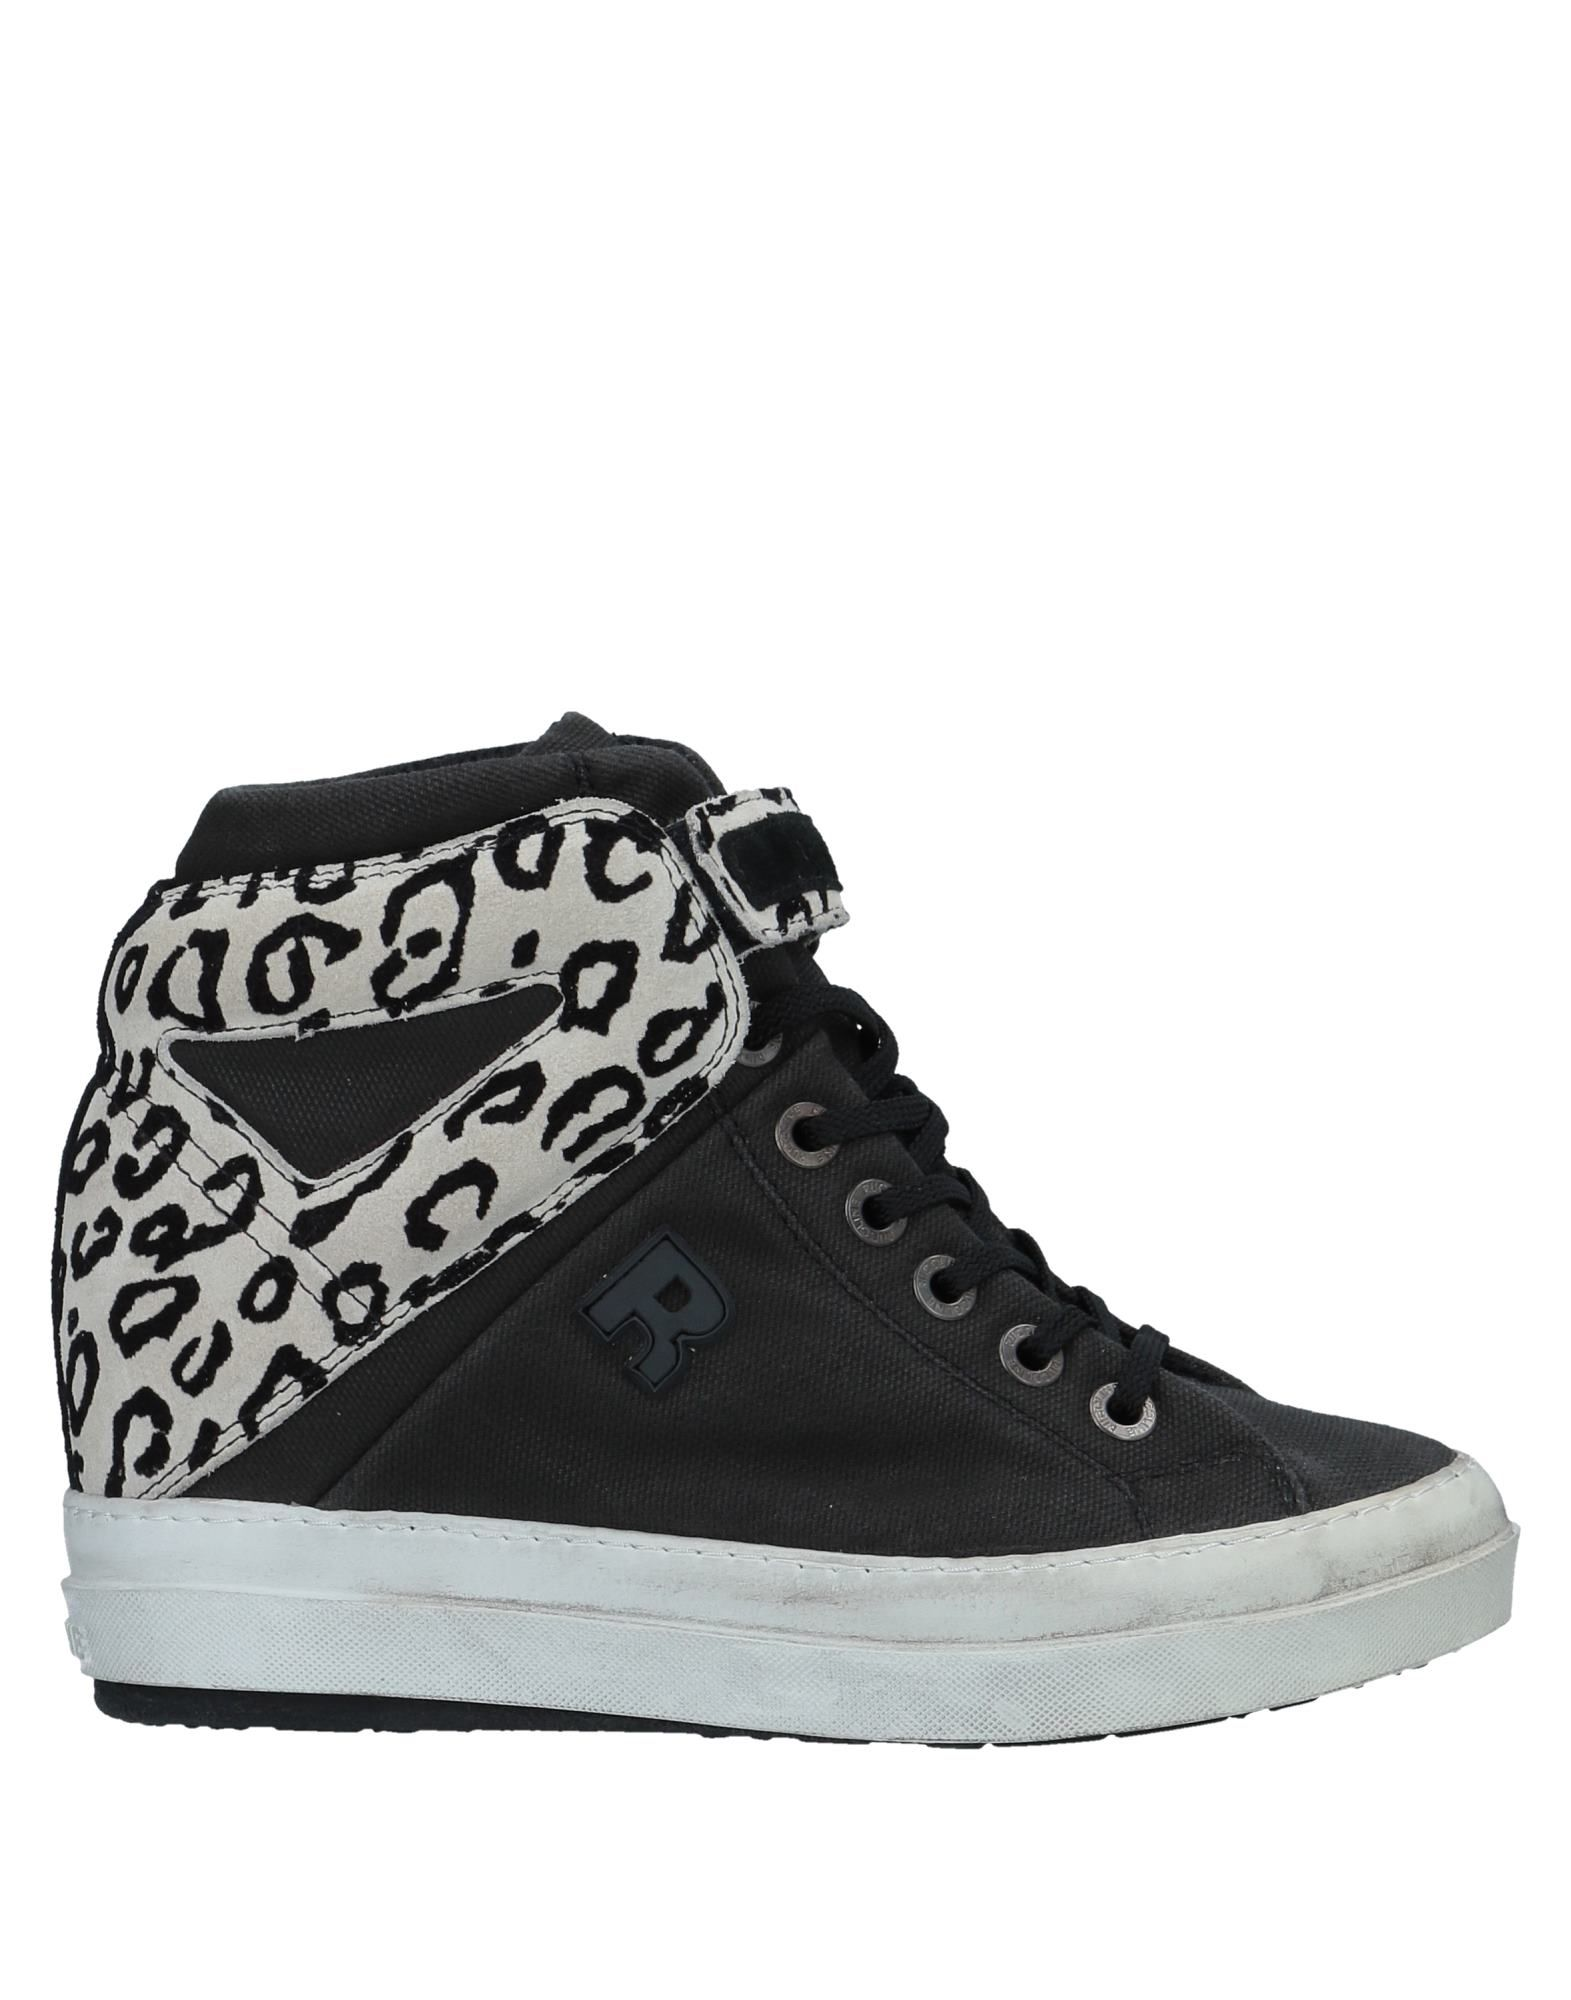 RUCO LINE | RUCO LINE High-tops & sneakers 11506806 | Goxip